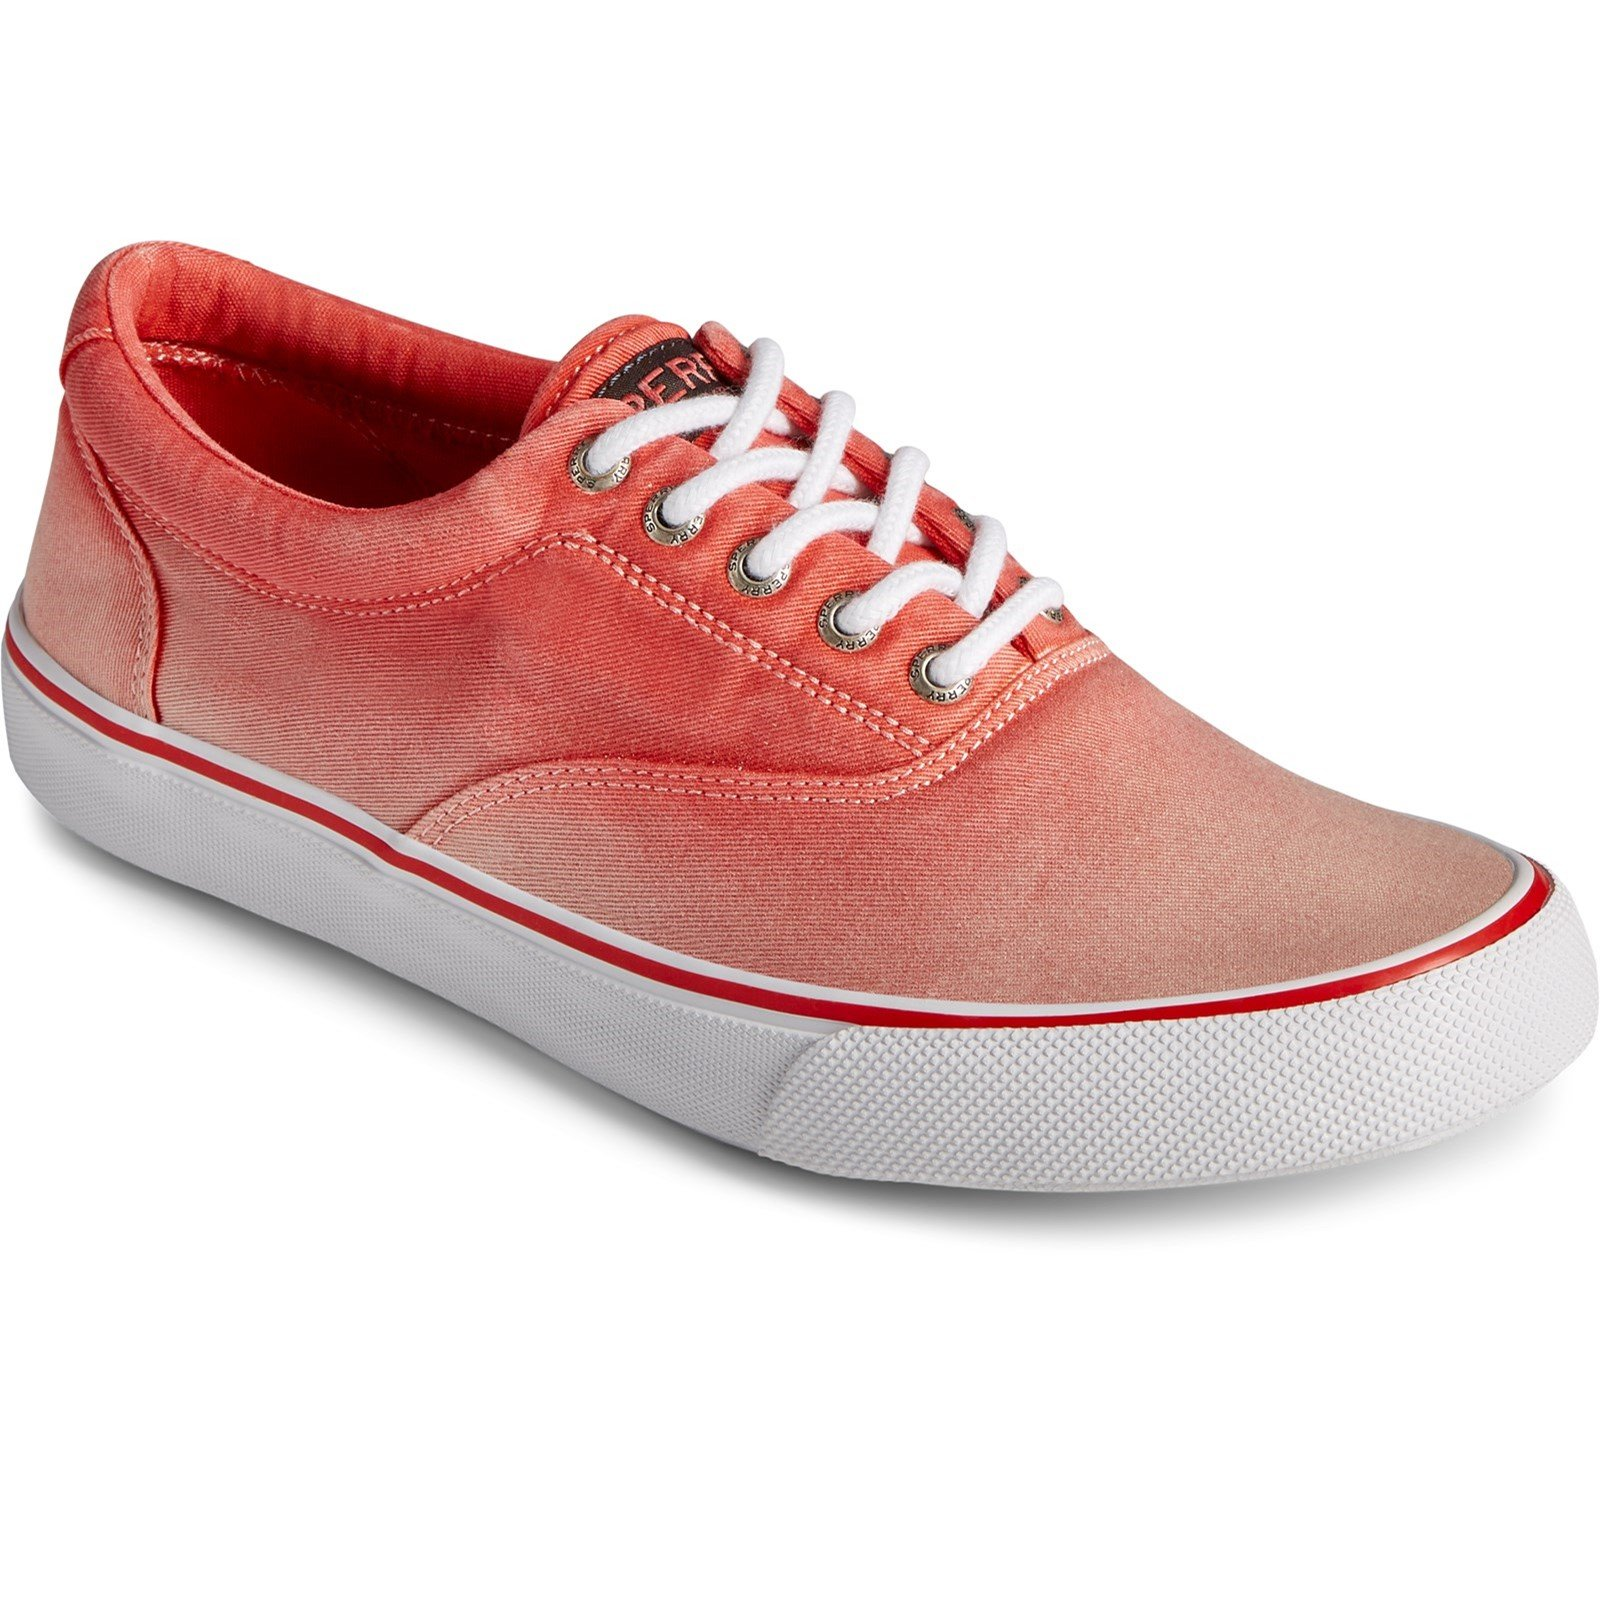 Sperry Men's Striper II CVO Ombre Lace Trainer Various Colours 32932 - Red 8